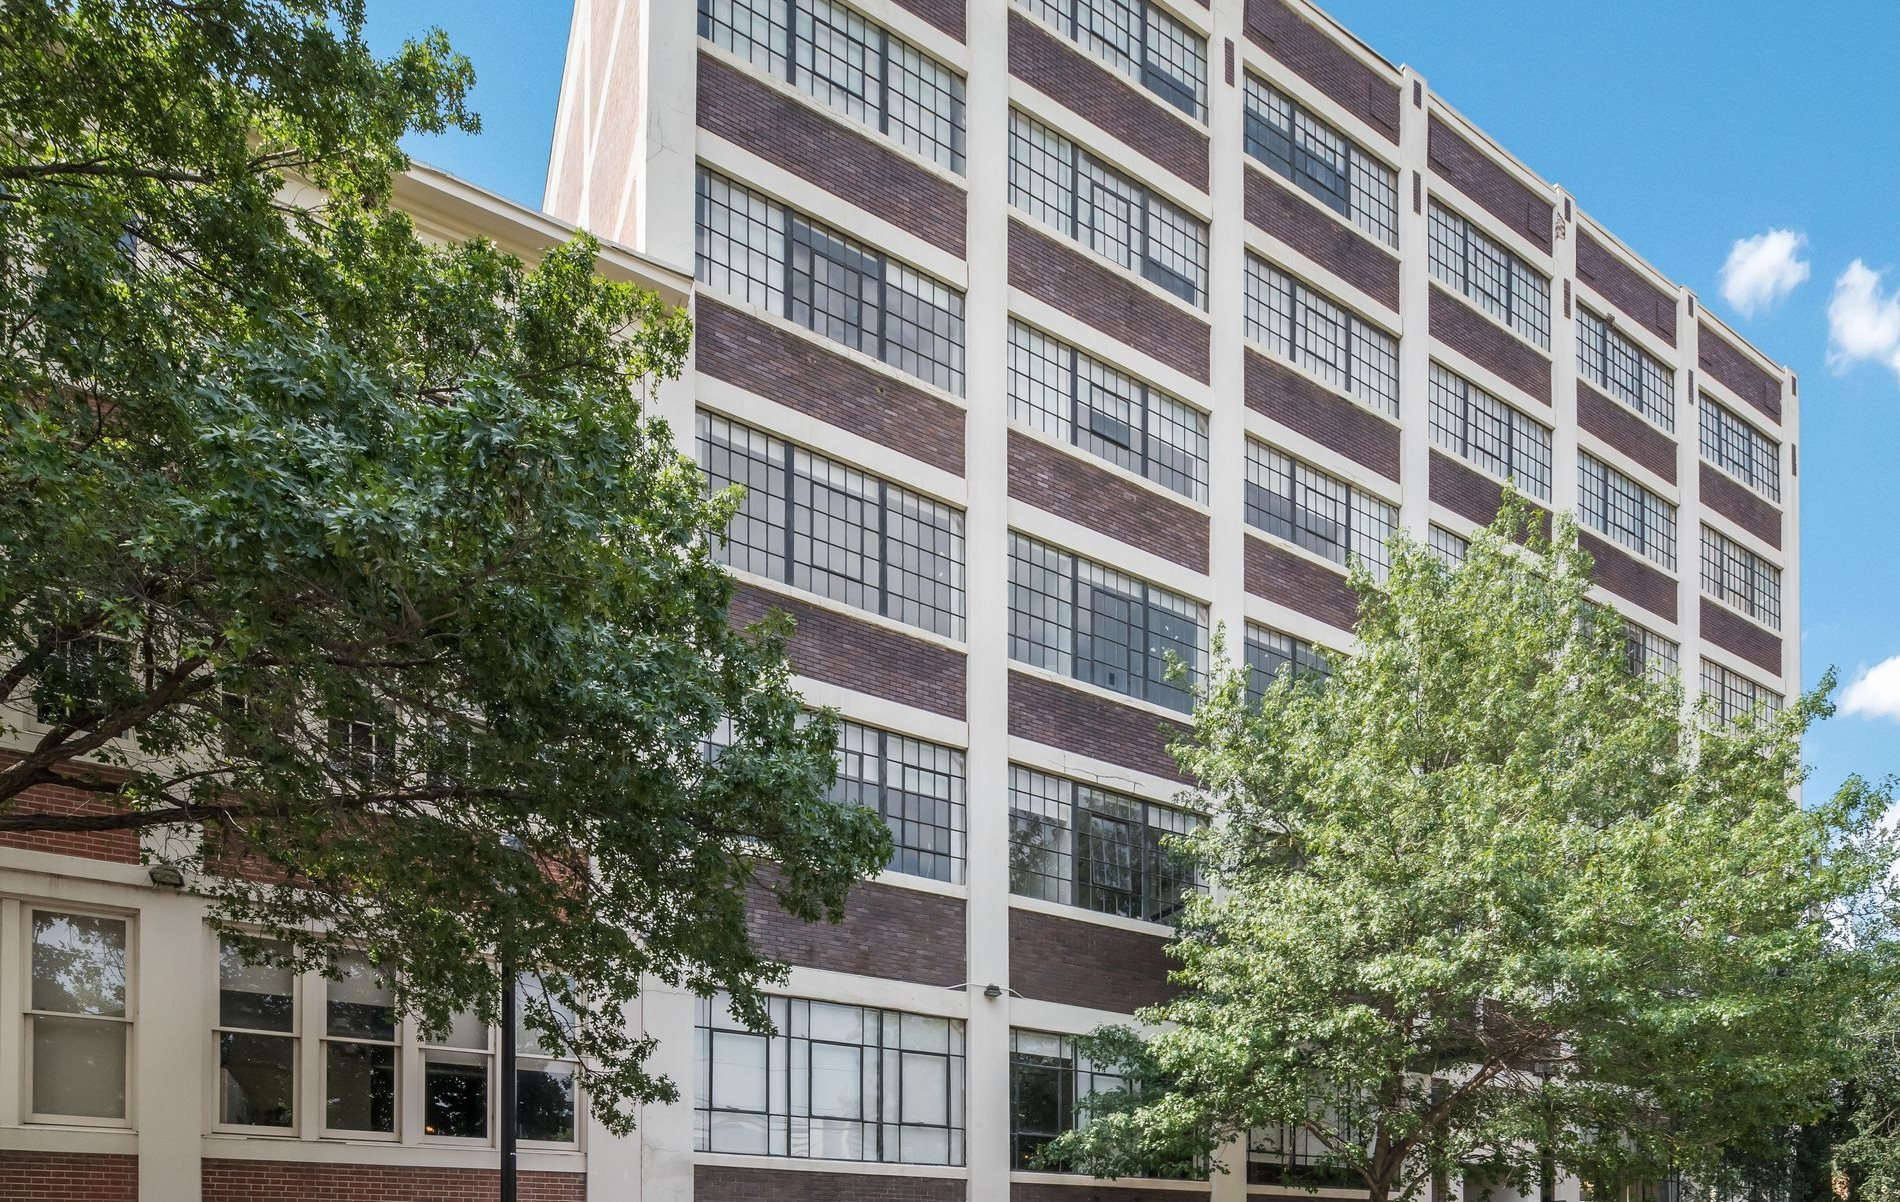 Building Exterior at 3200 Main Lofts in Deep Ellum, Dallas, Texas, TX